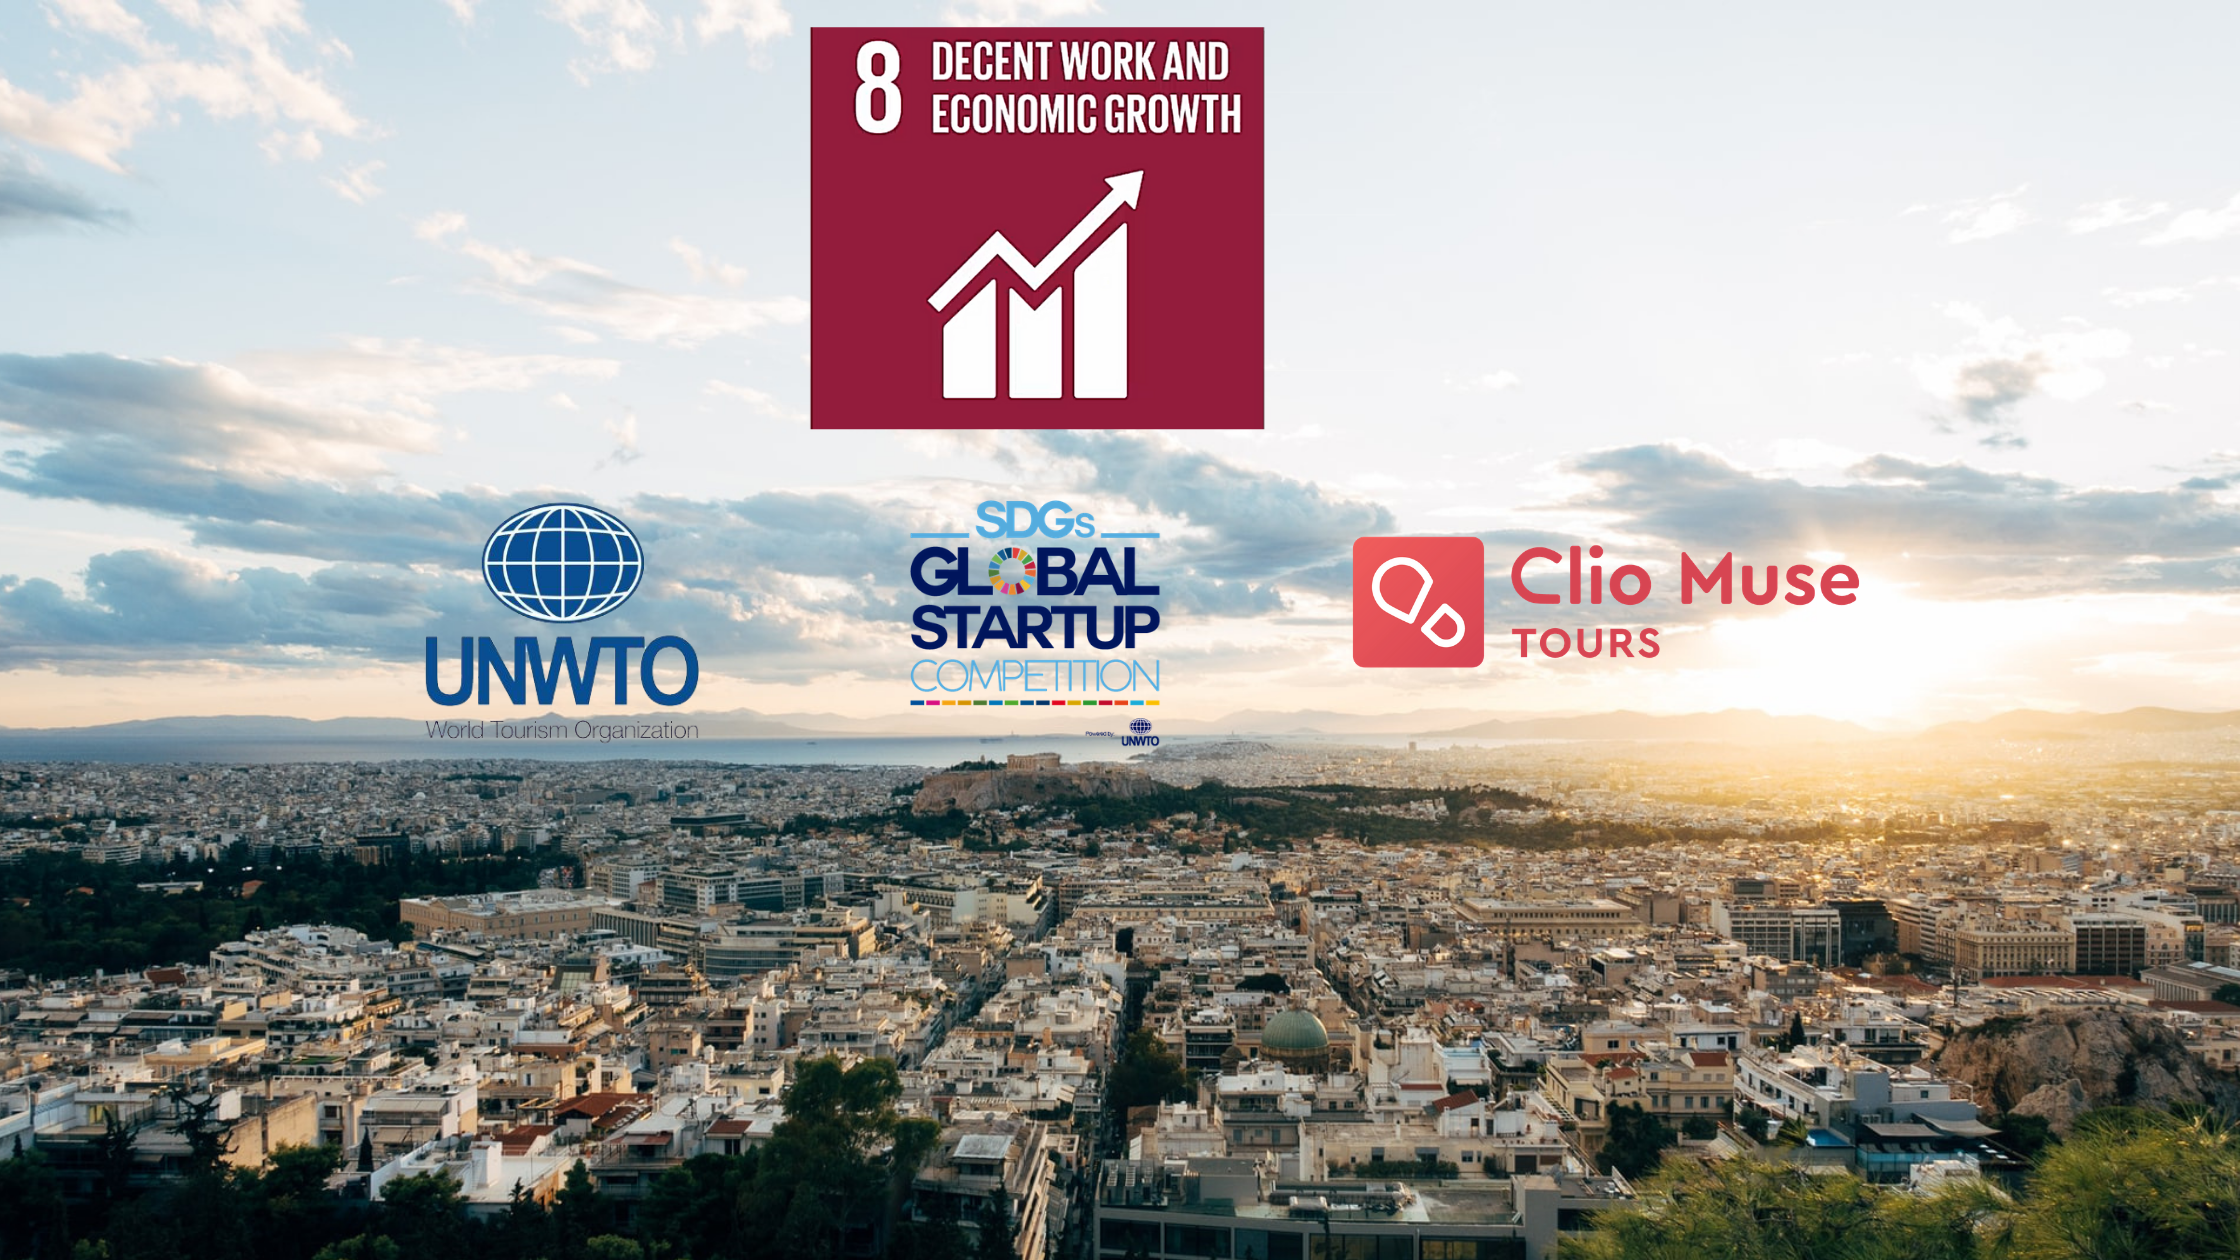 Clio Muse Is Among The Winners Of The United Nations World Tourism Organization SDGs Global Startup Competition